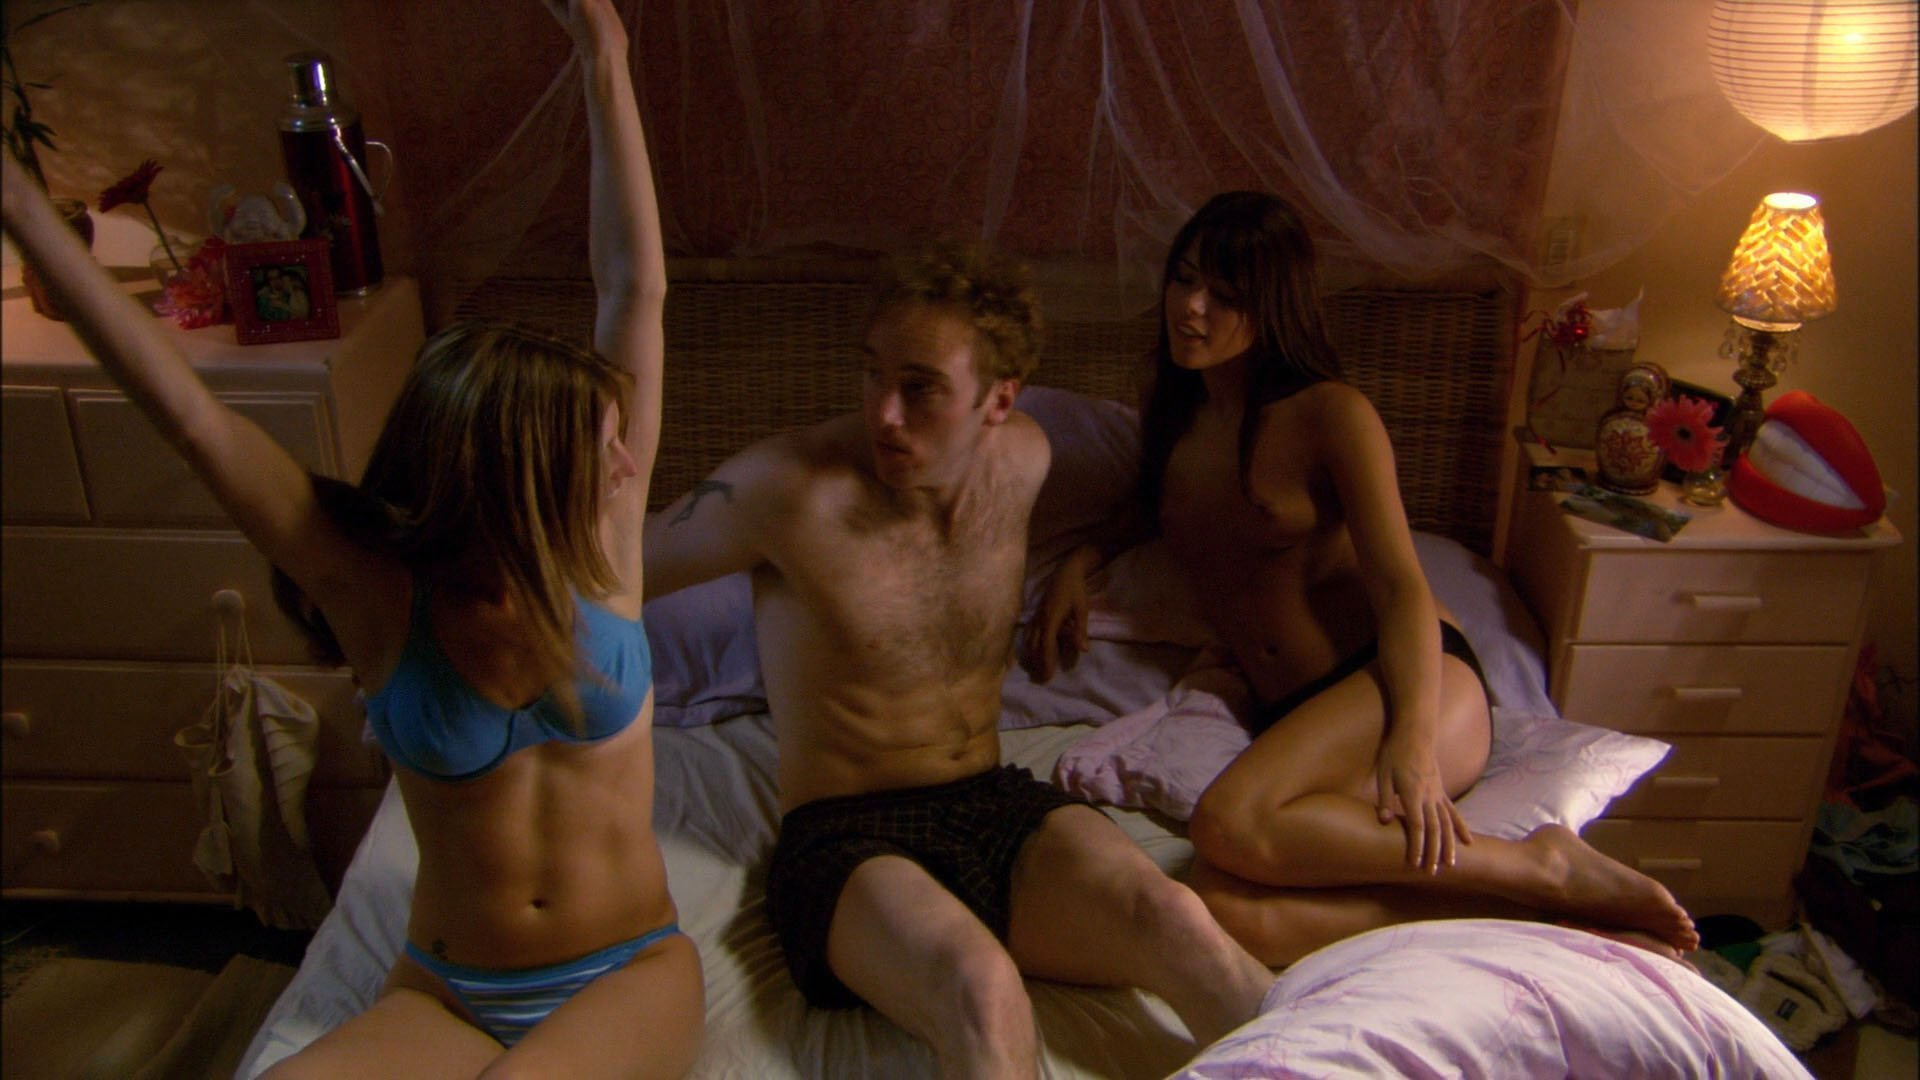 Nicole Marie Lenz nude, Jill Ritchie sexy - Seeing Other People (2004)